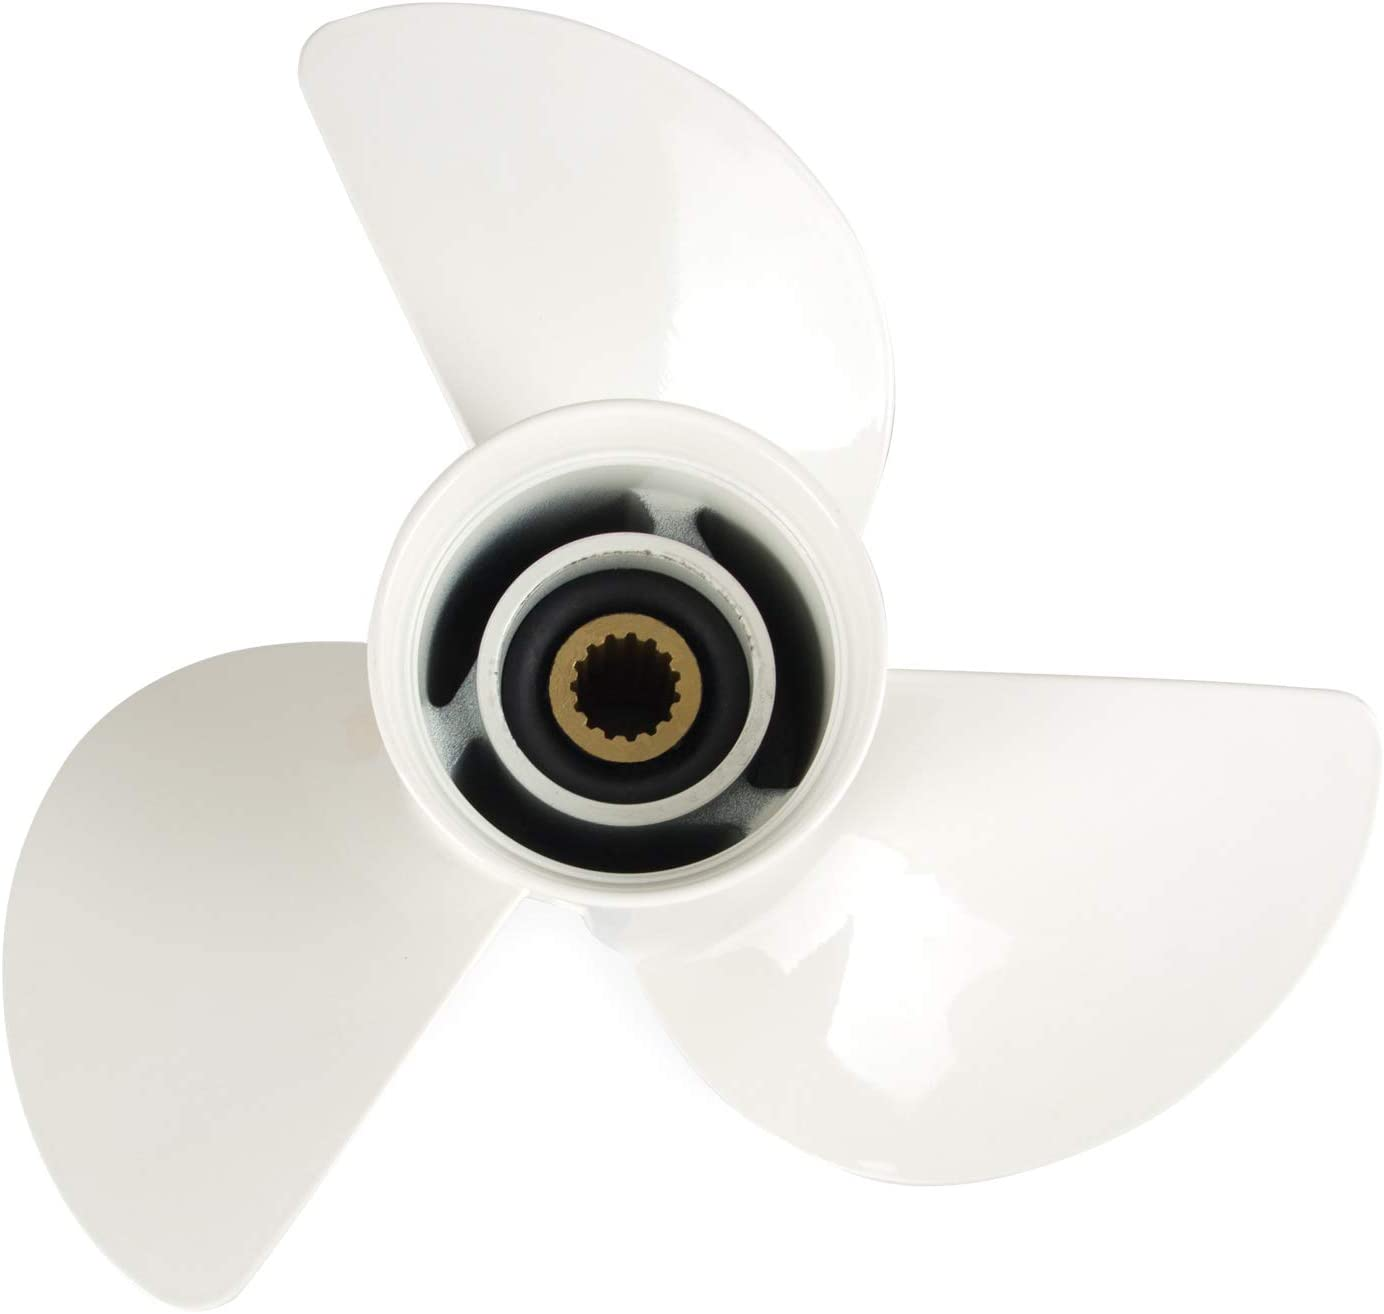 Tepeng 13 1/4 x 17 Outboard Propeller Right Rotation Propeller Compatible with Yamaha Outboard Engines 50-130 HP,Replace #6E5-45945-01-EL